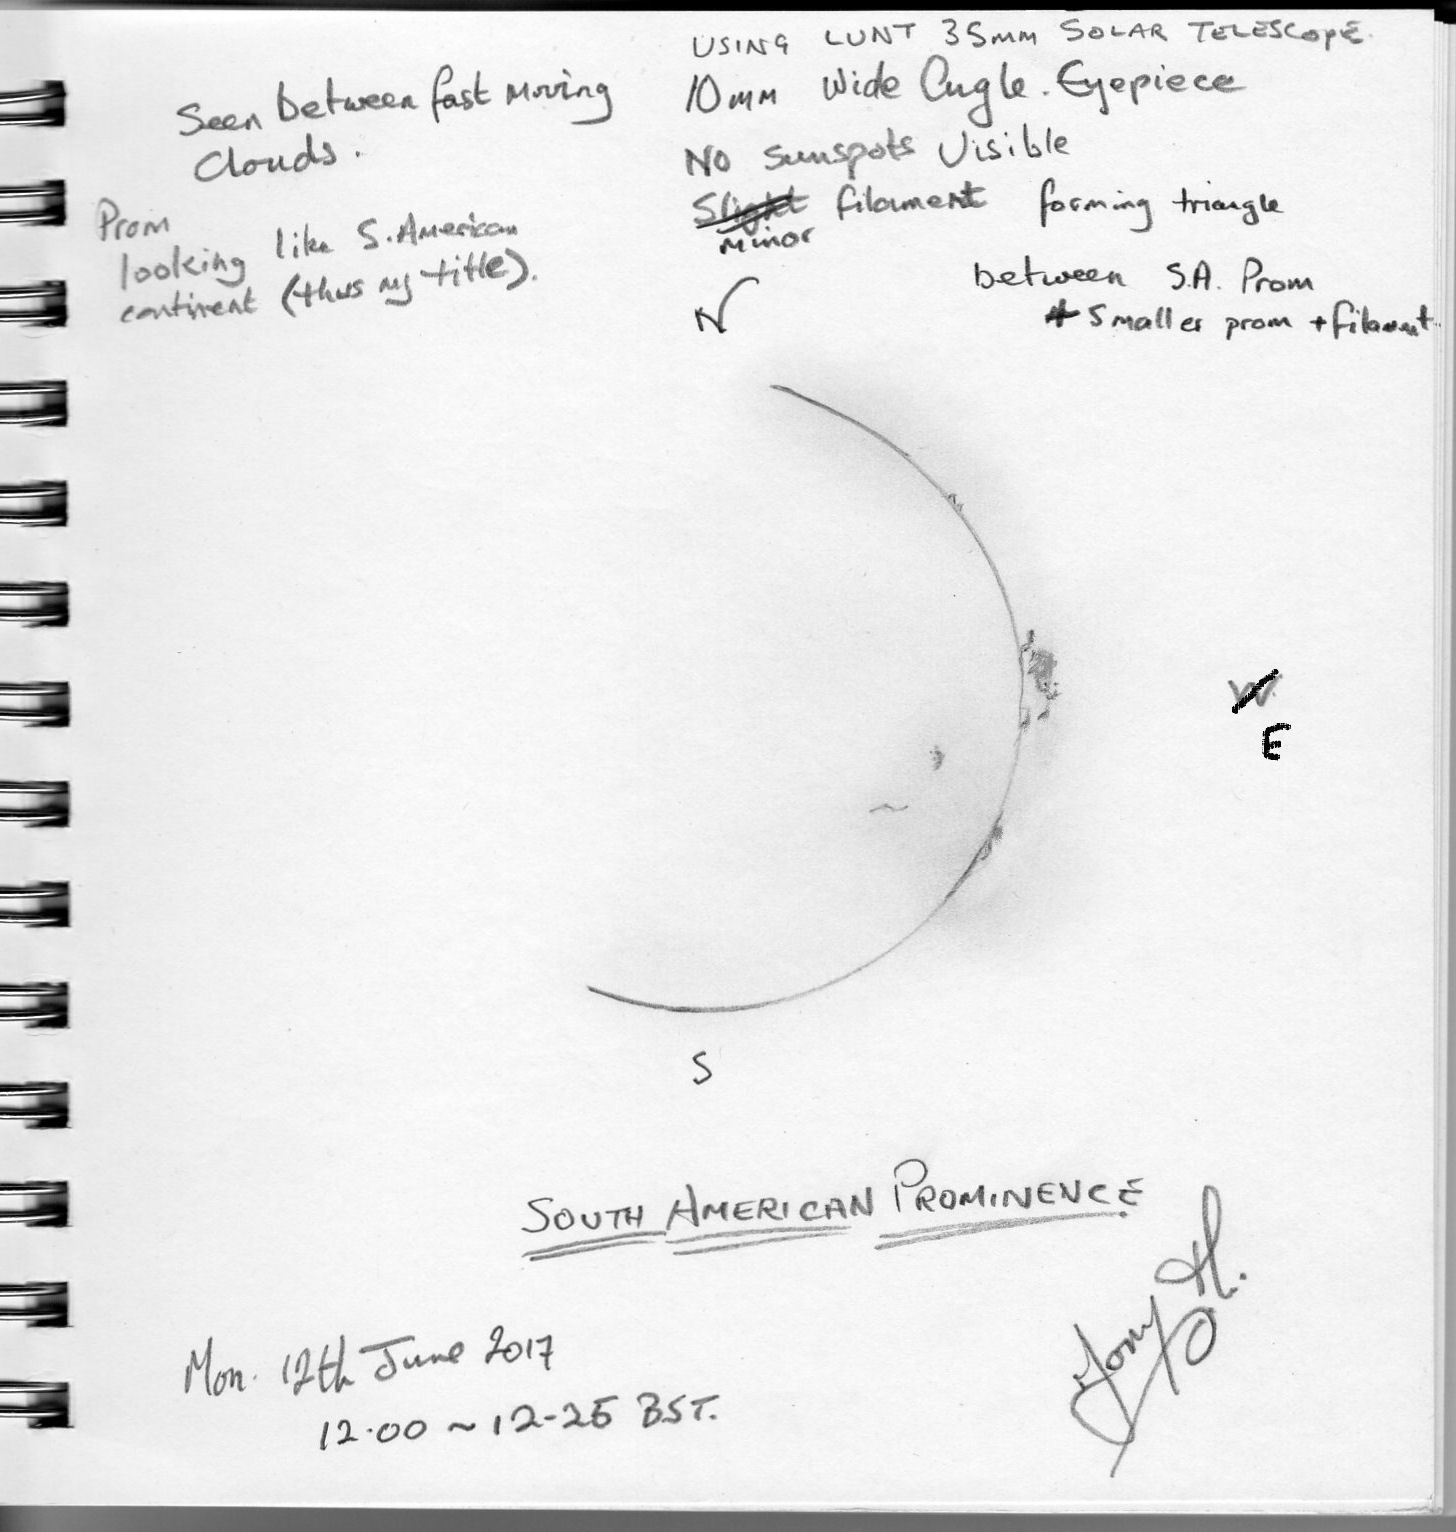 Prominence - Sketch by T Hayes.  I made this sketch on 12th June - the first day of clear enough sun to make using the telescope worthwhile. Clouds were scudding across the sky and I took brief glimpses of Sol with my Lunt 35mm telescope before the clouds finally won and I gave up for the day.